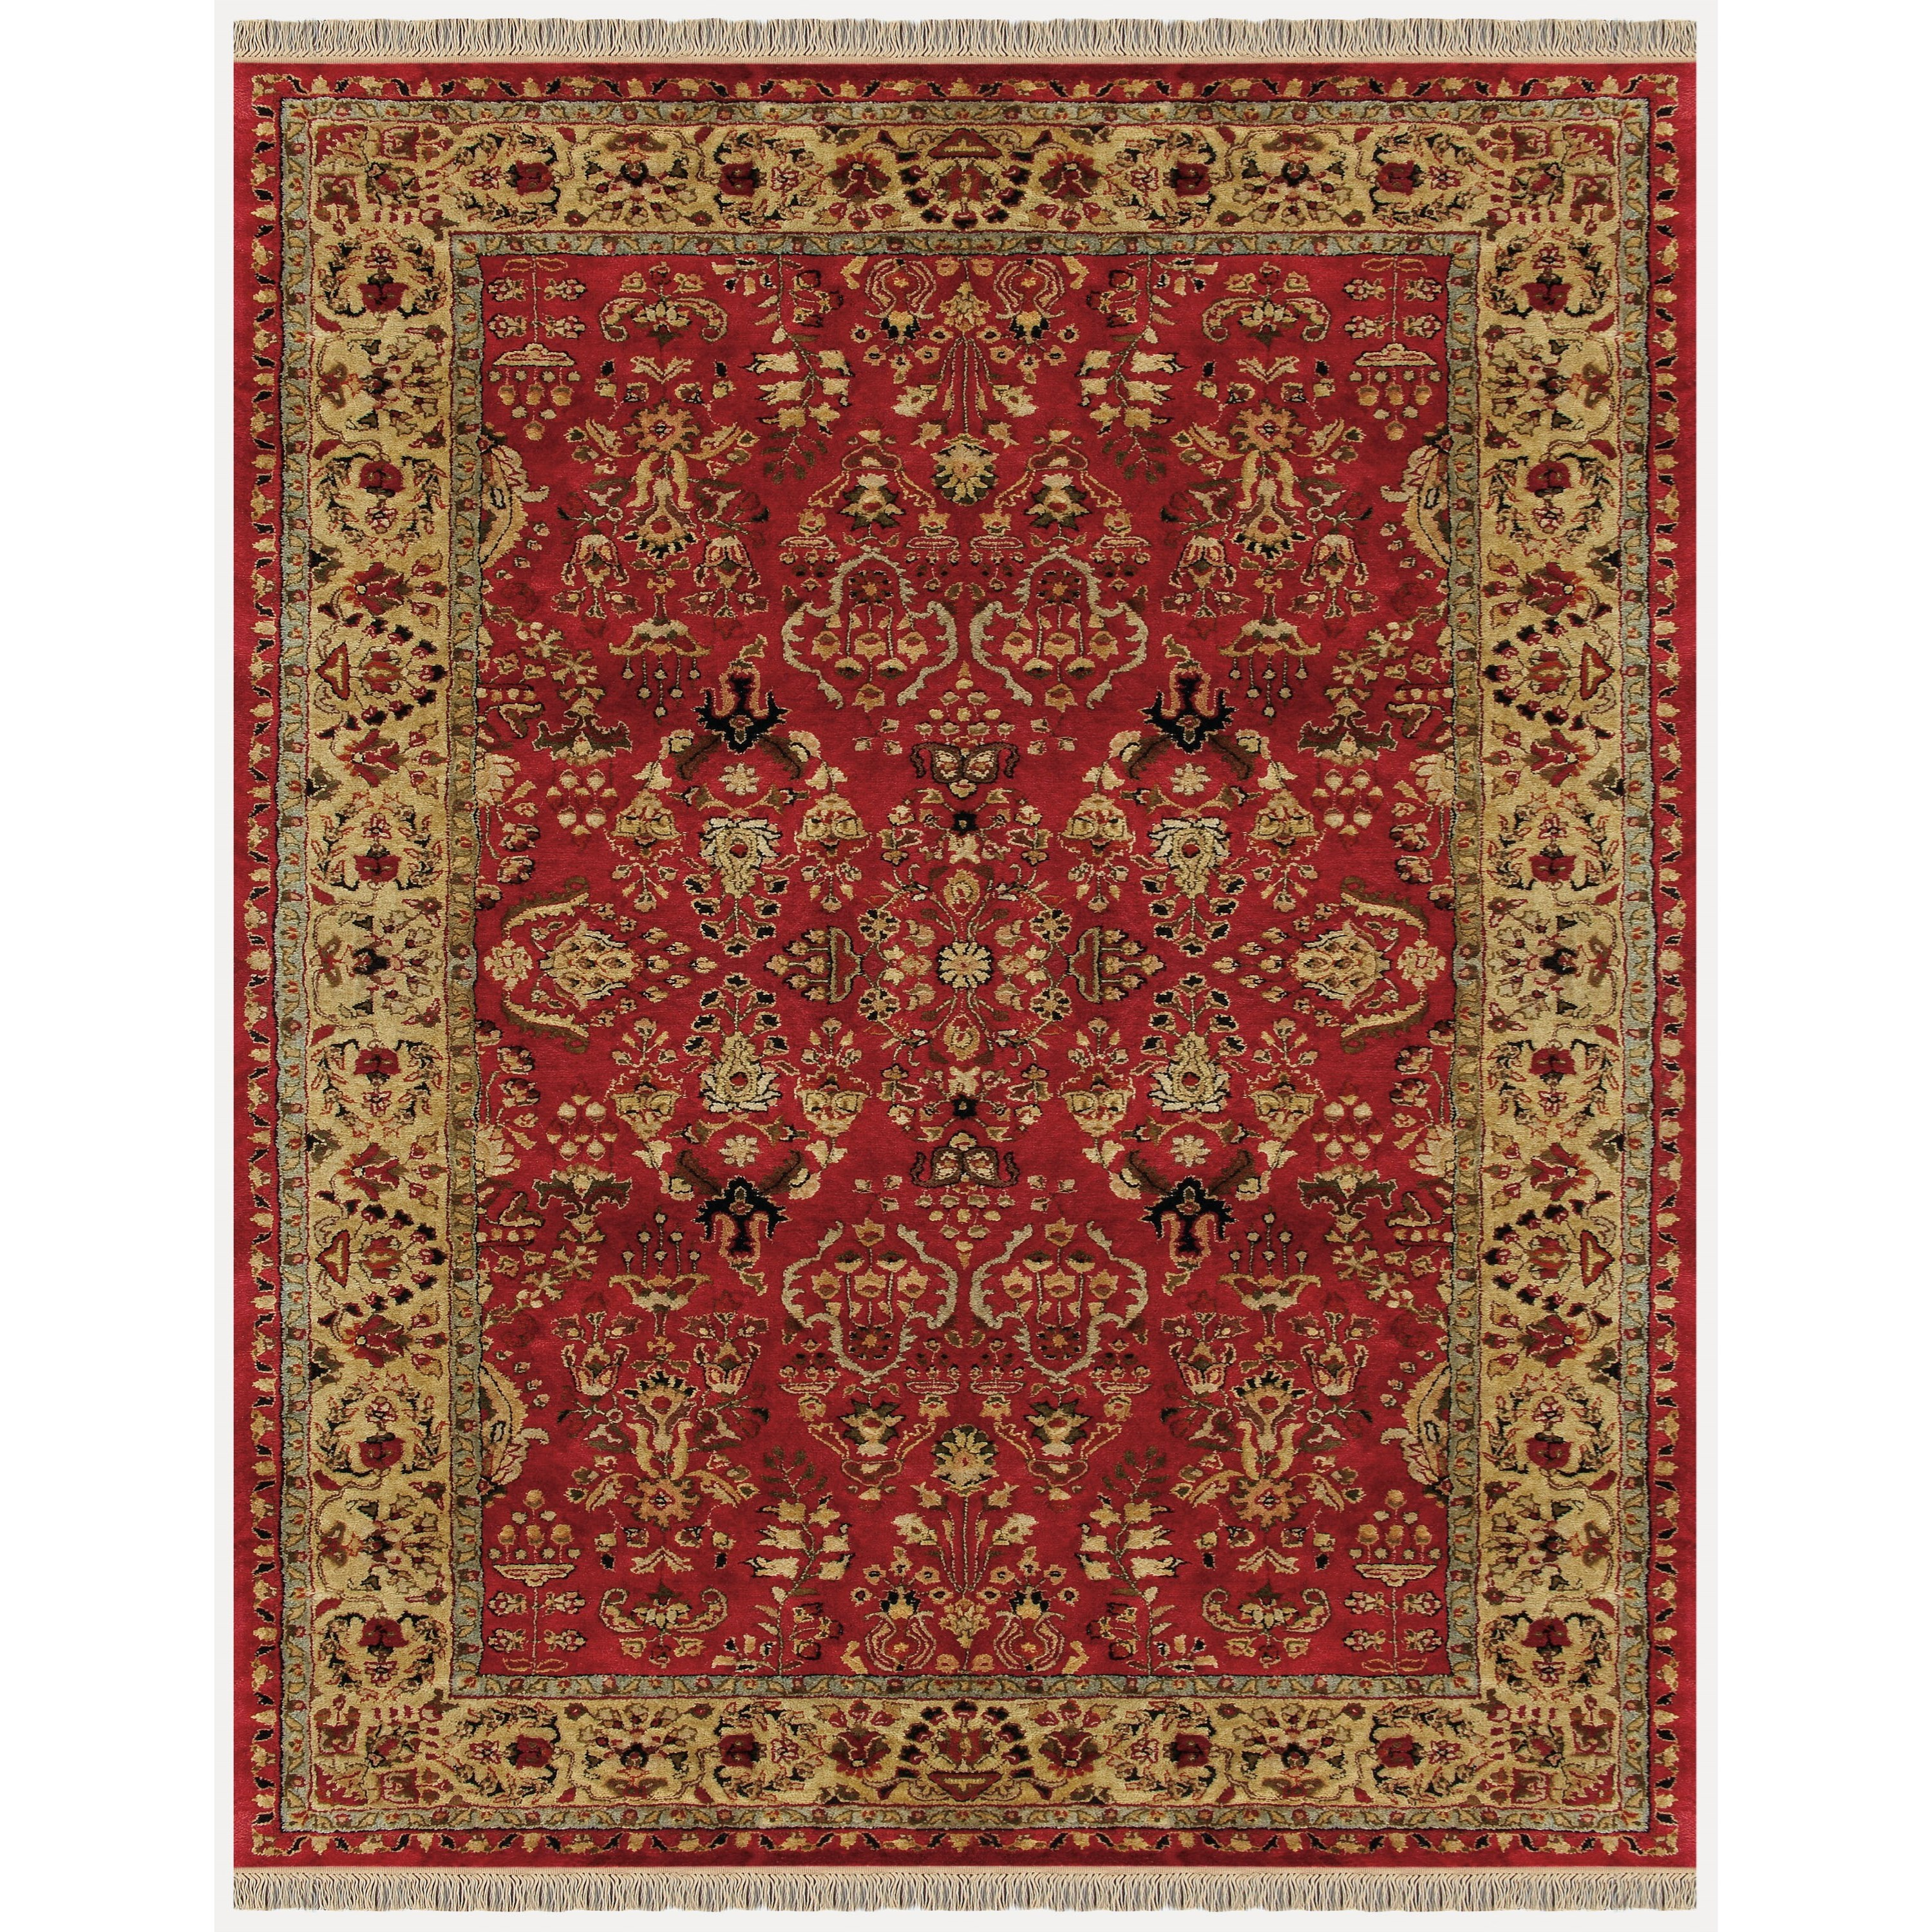 Amore Red/Light Gold 2' x 3' Area Rug by Feizy Rugs at Sprintz Furniture